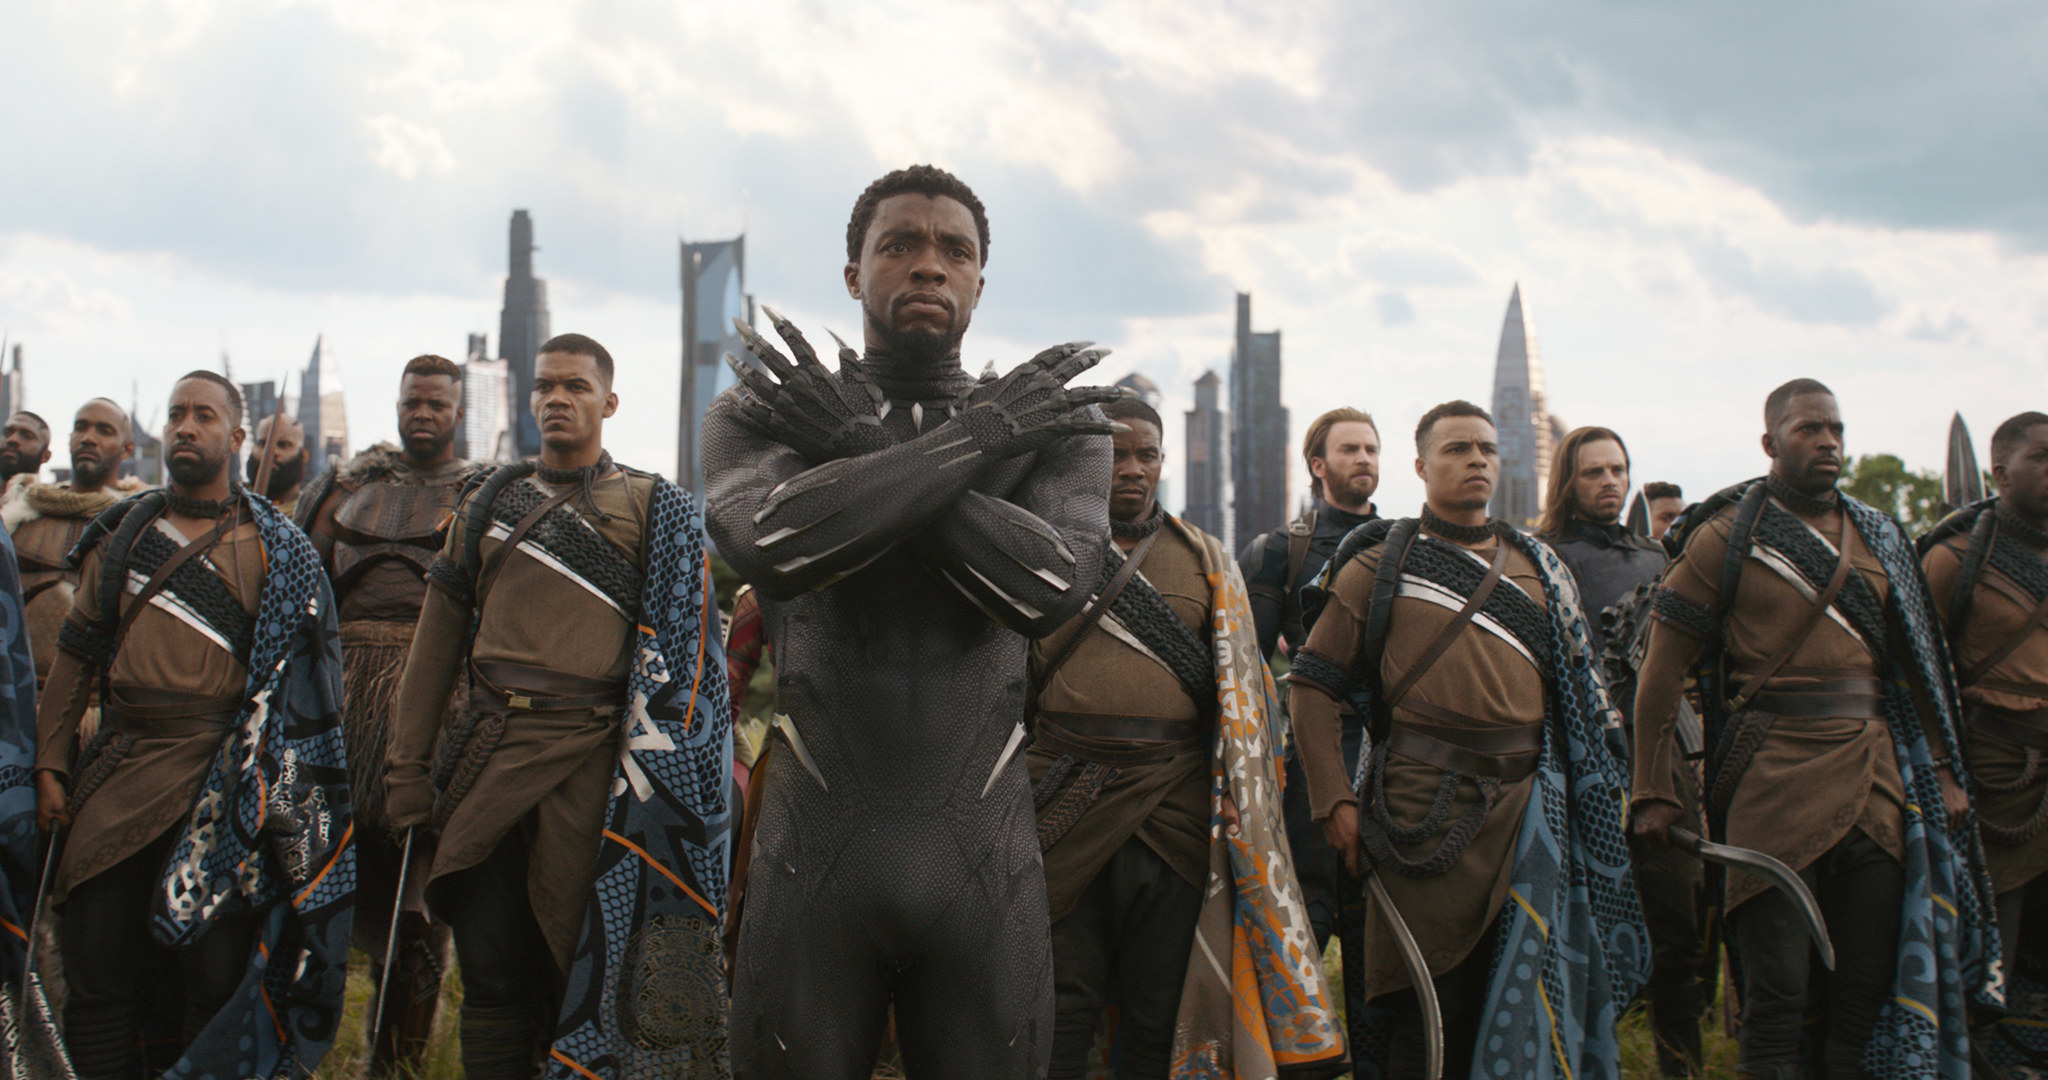 Boseman doing the 'Wakanda Forever' salute as fighters stand behind him in Black Panther in Avengers: Infinity War